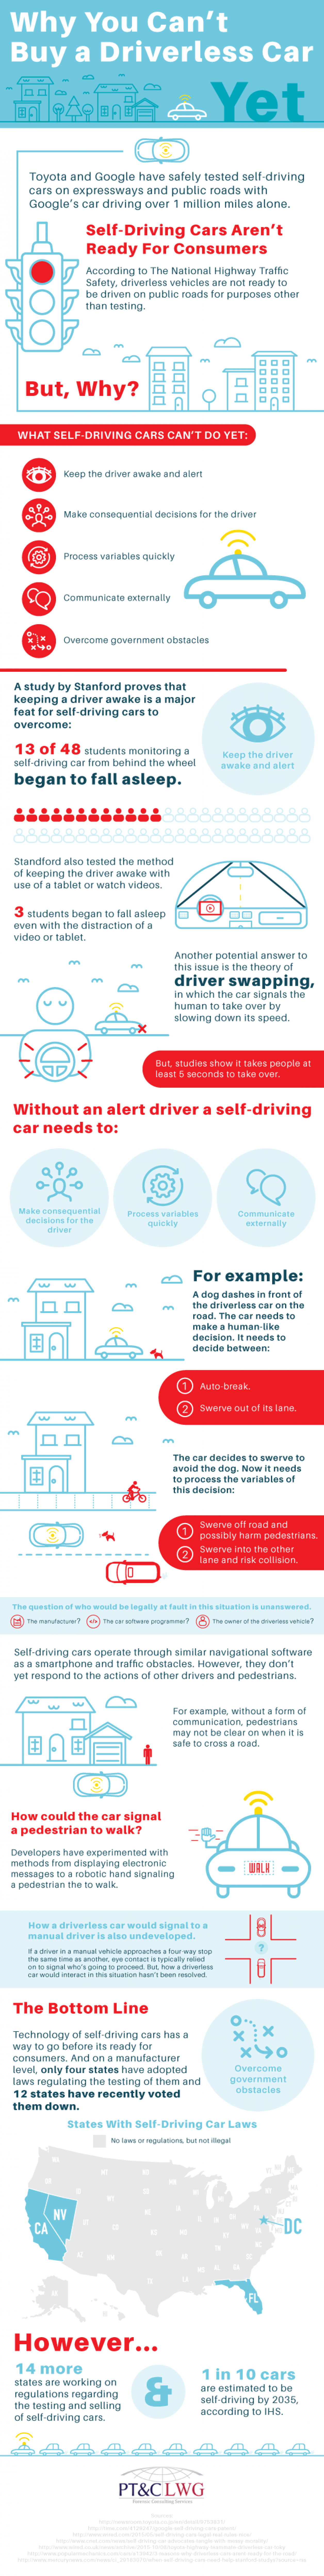 Why Self-Driving Cars Aren't On The Road Yet Infographic